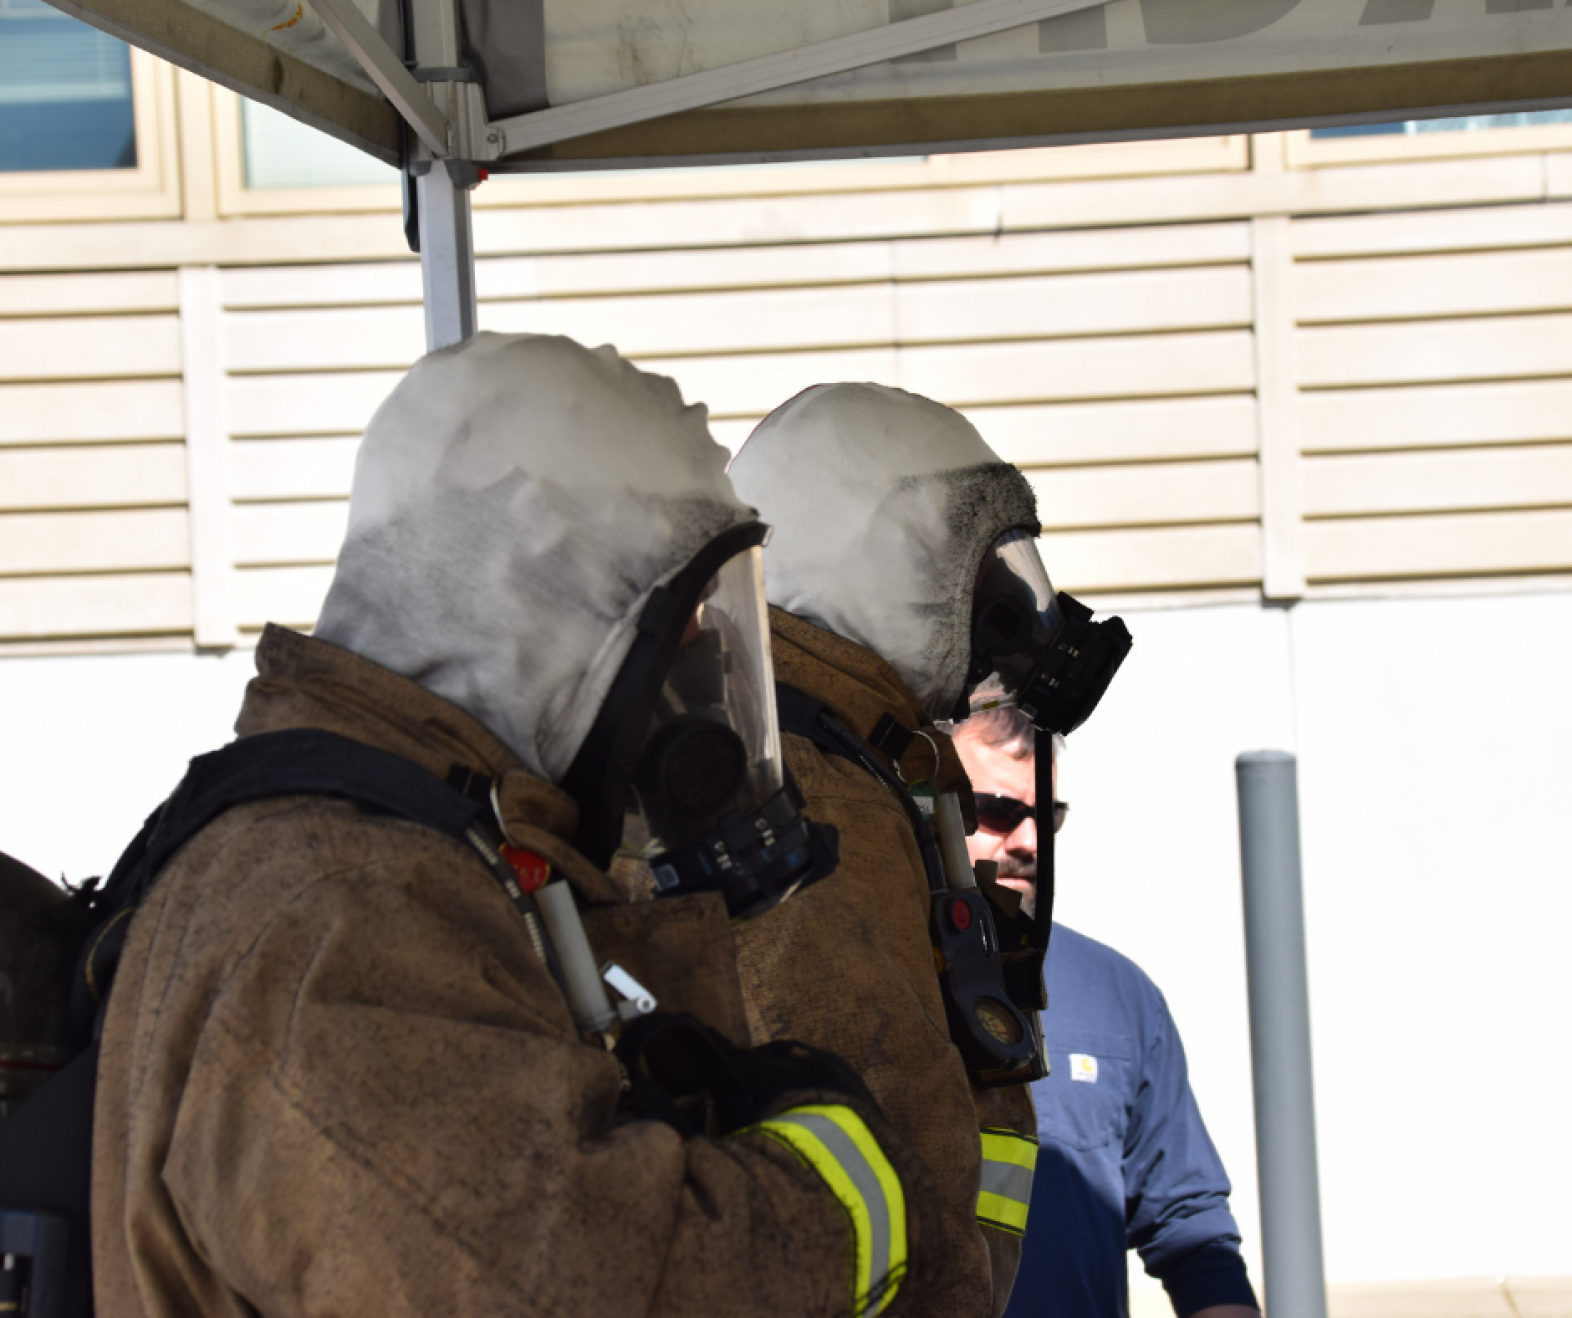 firefighters wearing protective gear and white hoods